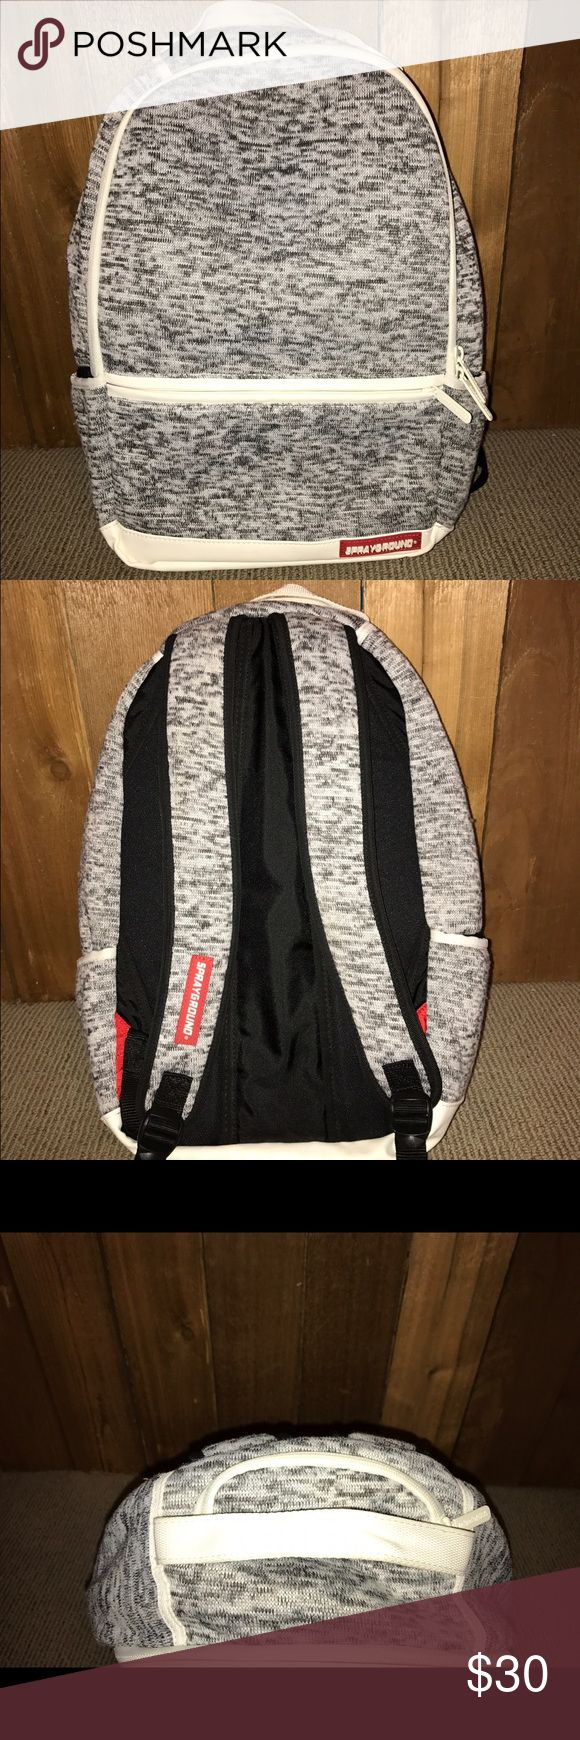 Spray ground back pack Worn for 1 week, it was big enough for his textbooks. Knit school bag. No marks, as good as new! Price is negotiable. sprayground Other